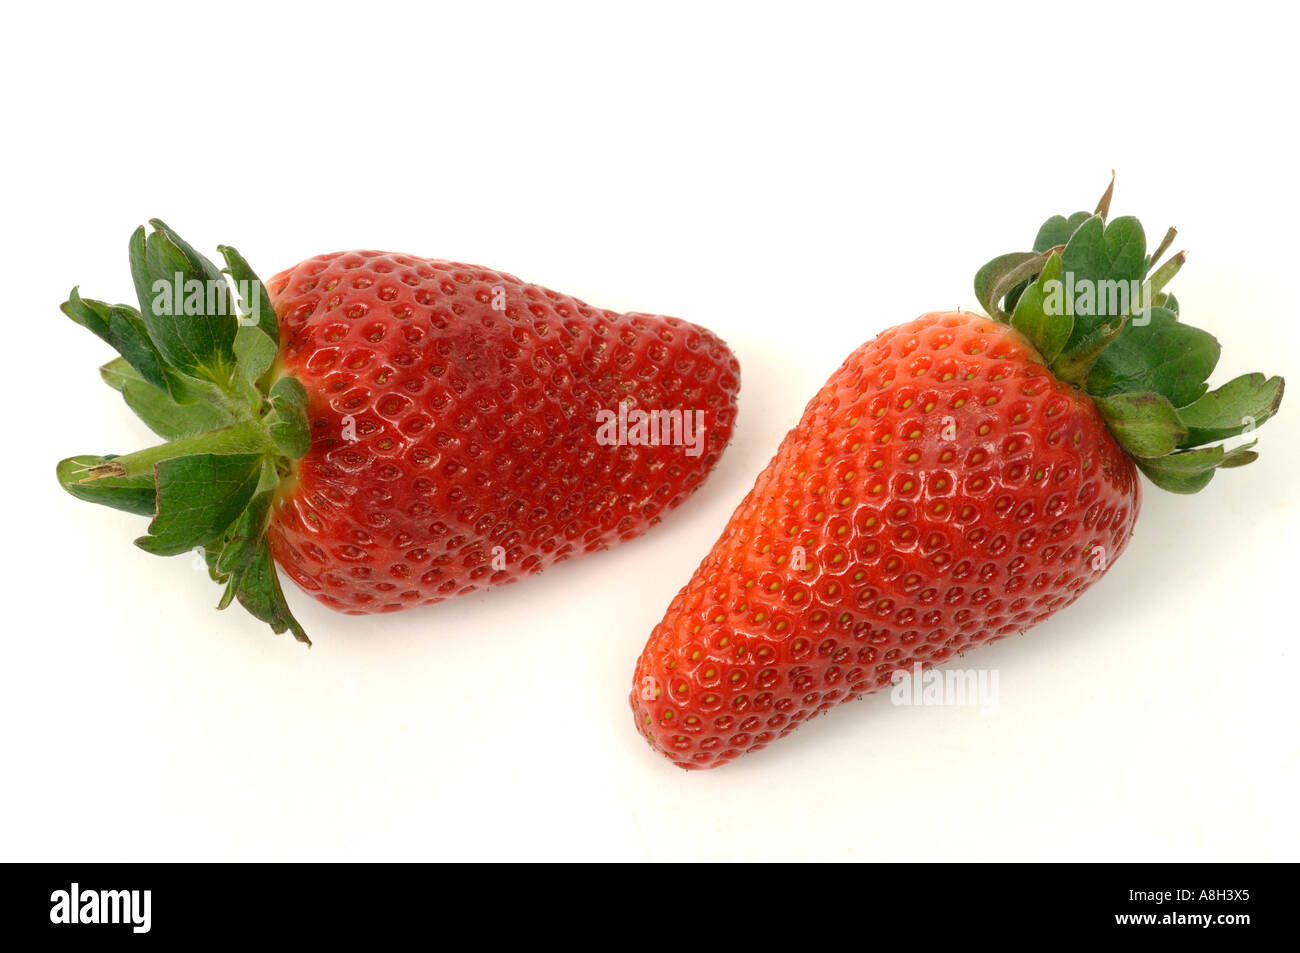 Spanish strawberry fruit supermarket bought and in normal shop condition - Stock Image